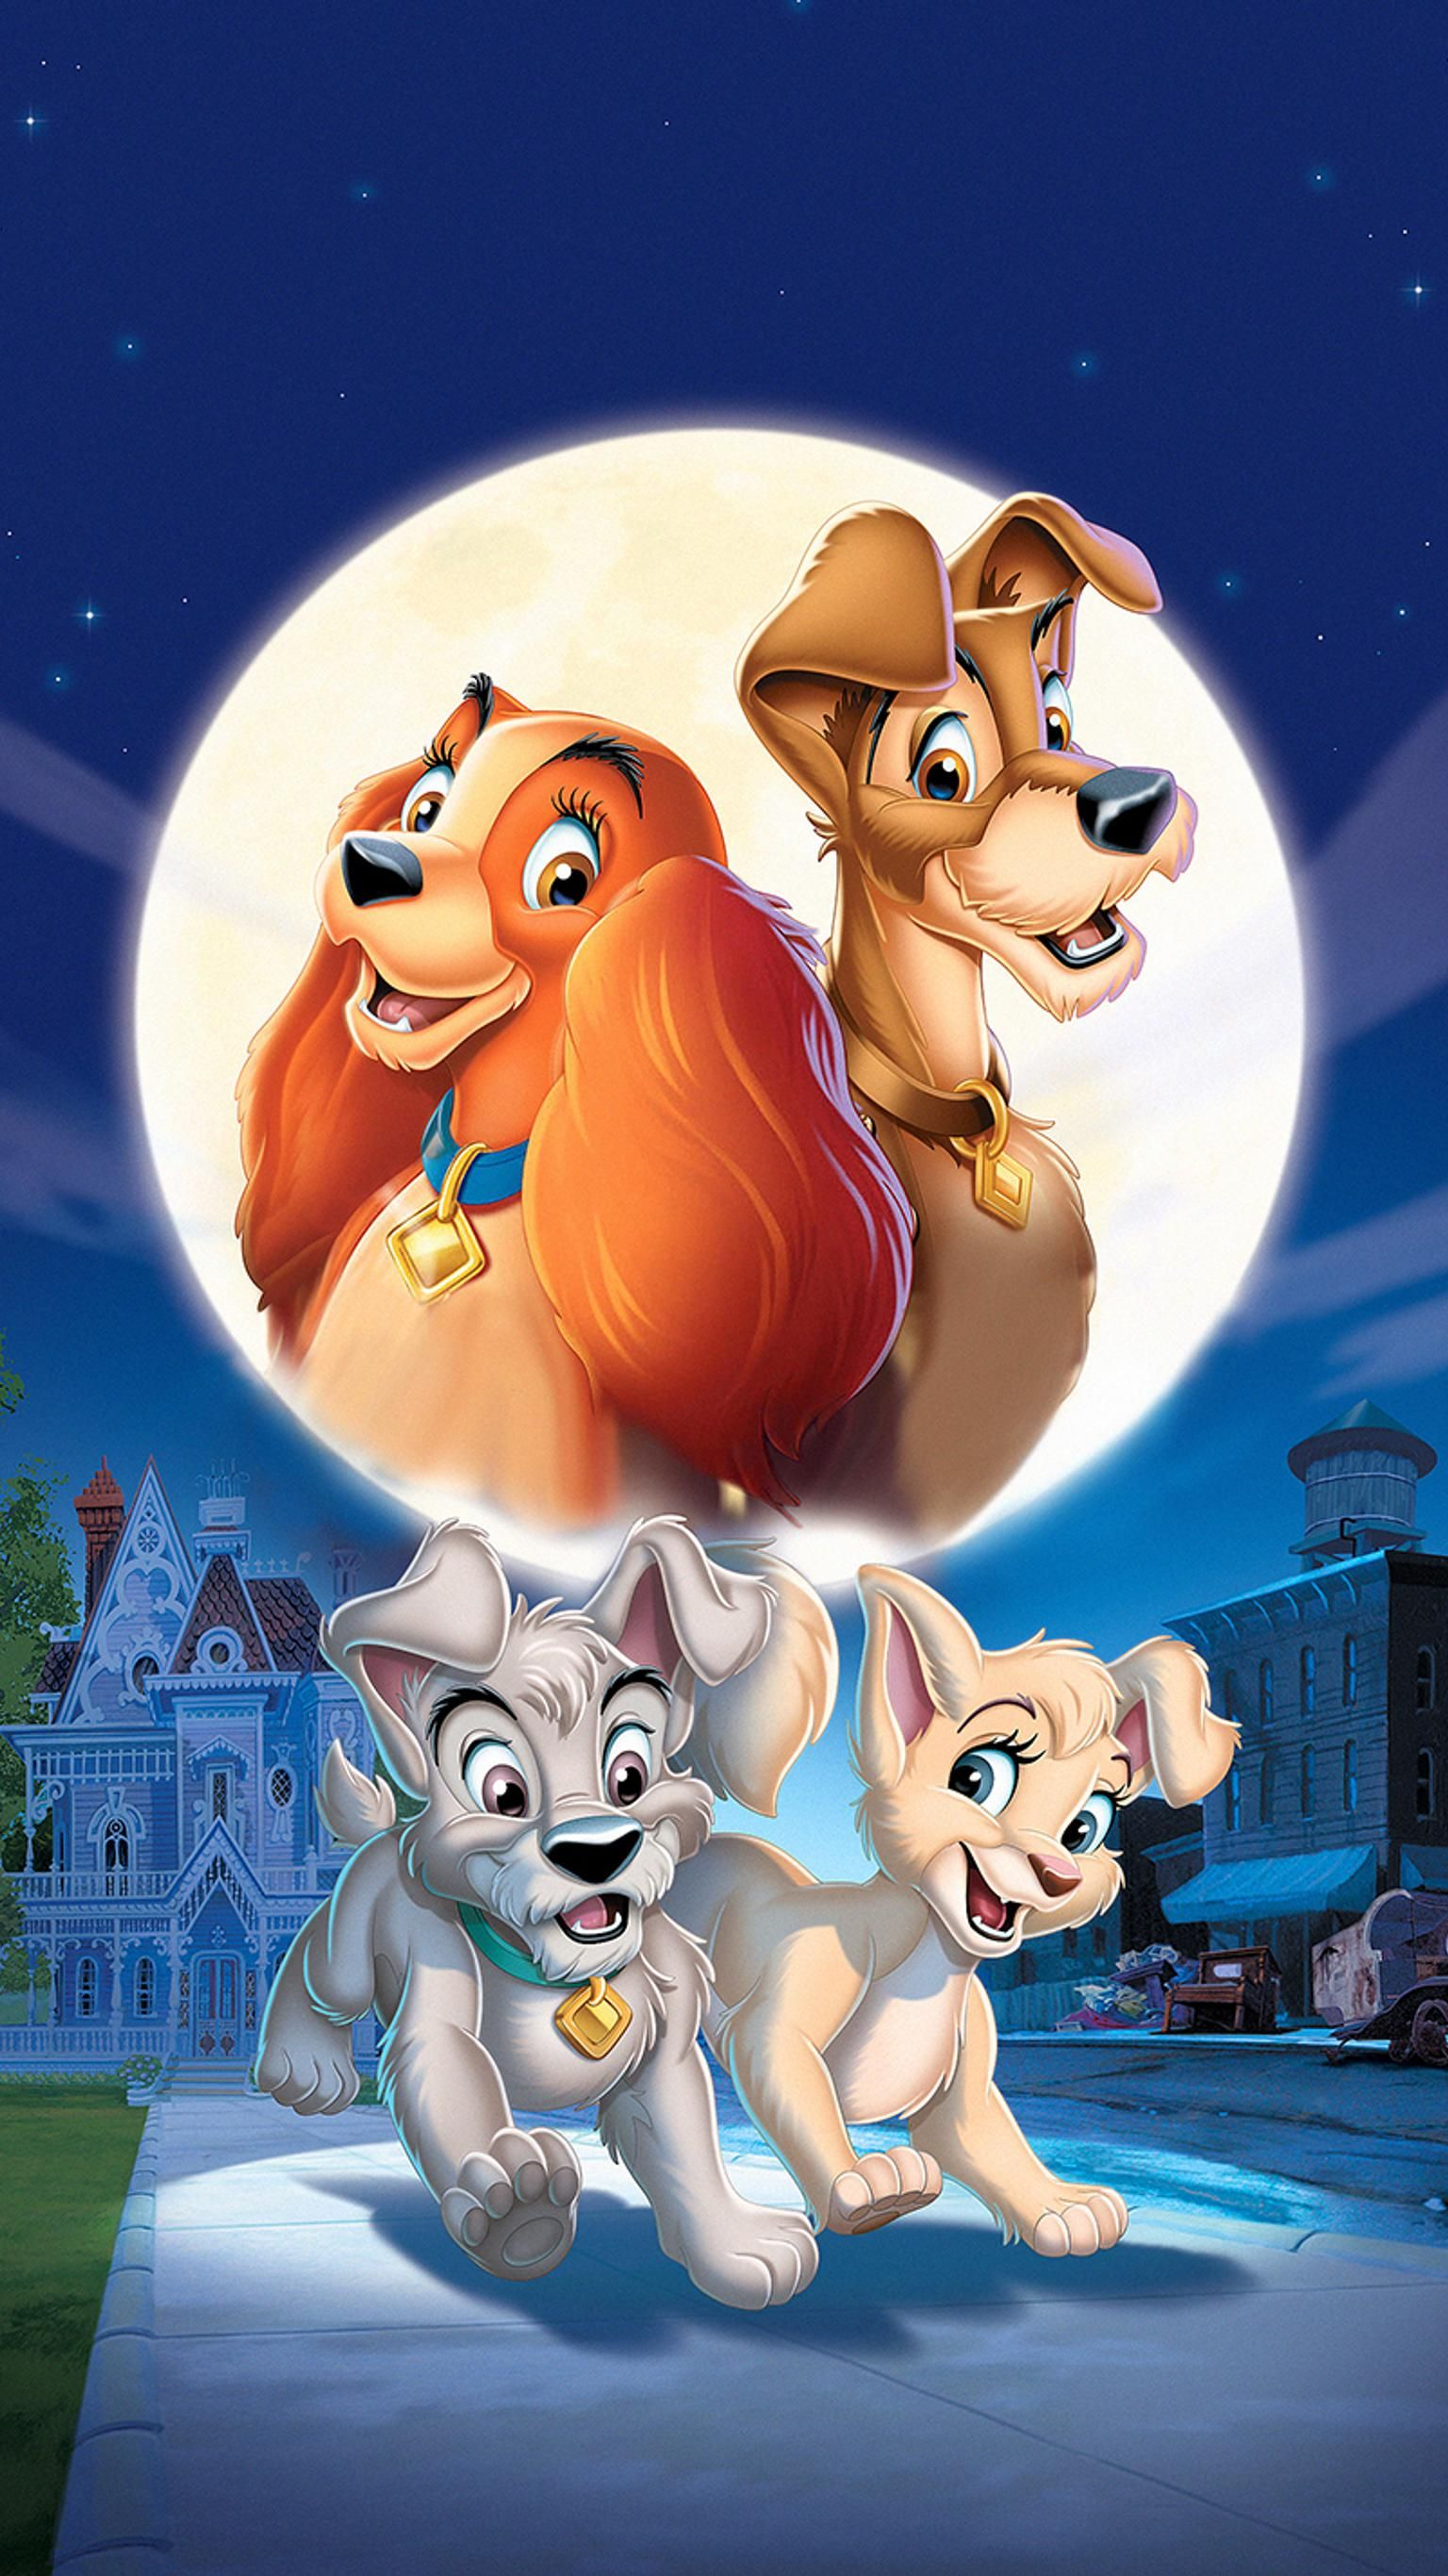 Lady and the Tramp II: Scamp's Adventure (2001) Phone Wallpaper | Moviemania